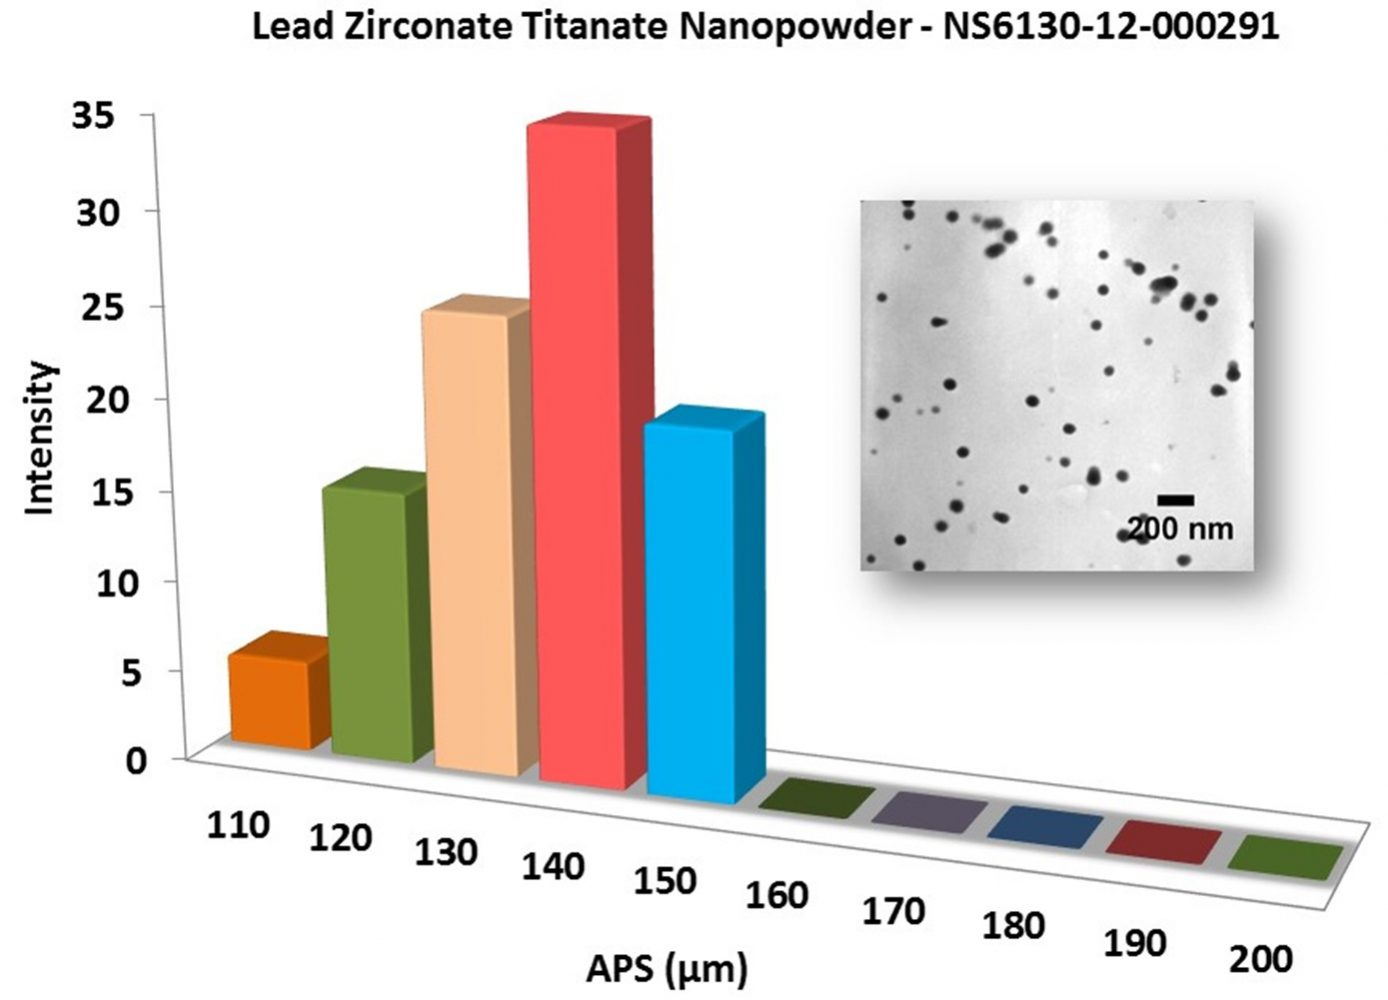 Lead Zirconate Titanate Nanopowder